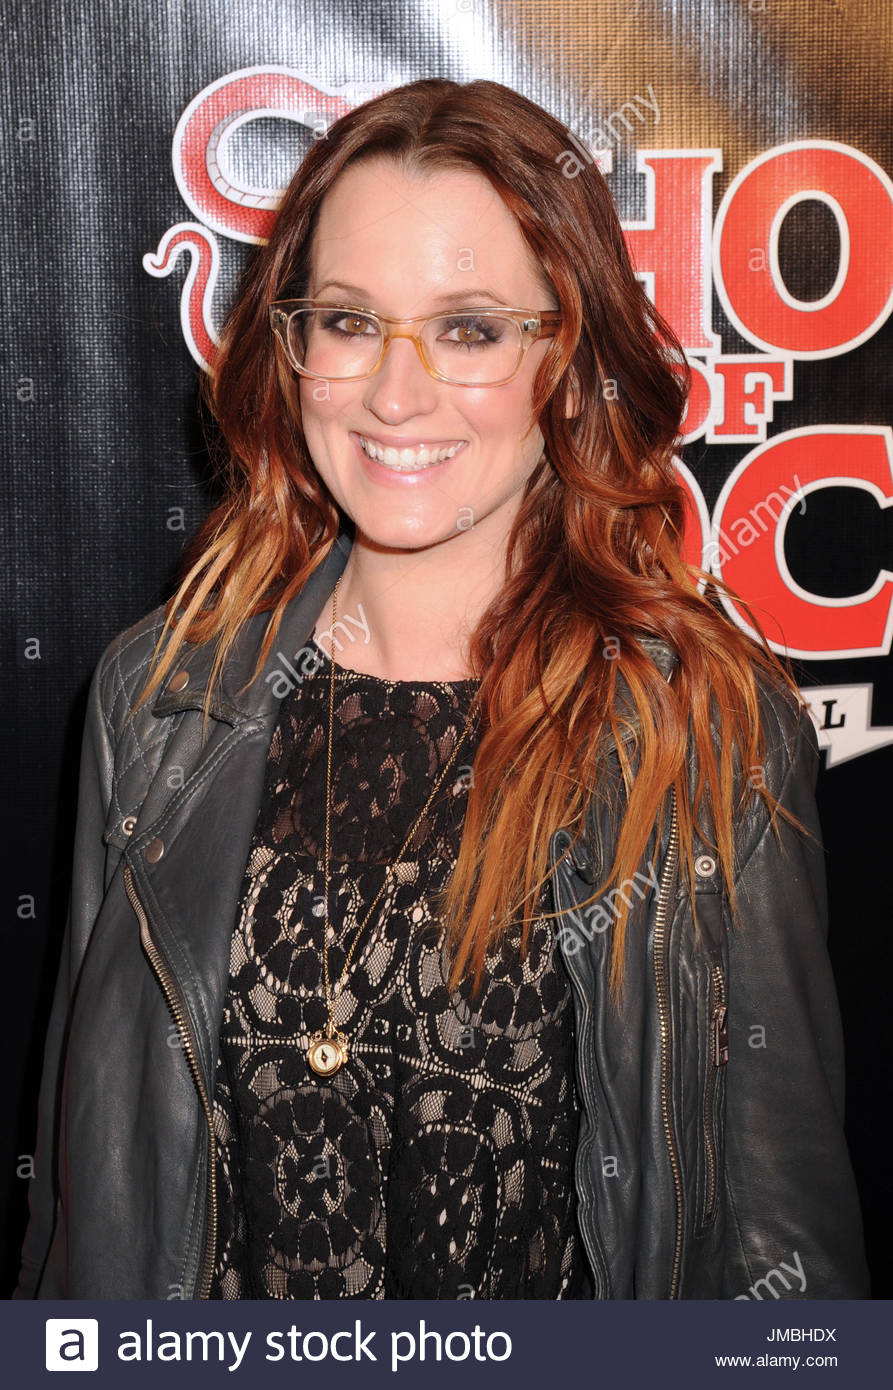 ingrid michaelson celebrities attend the